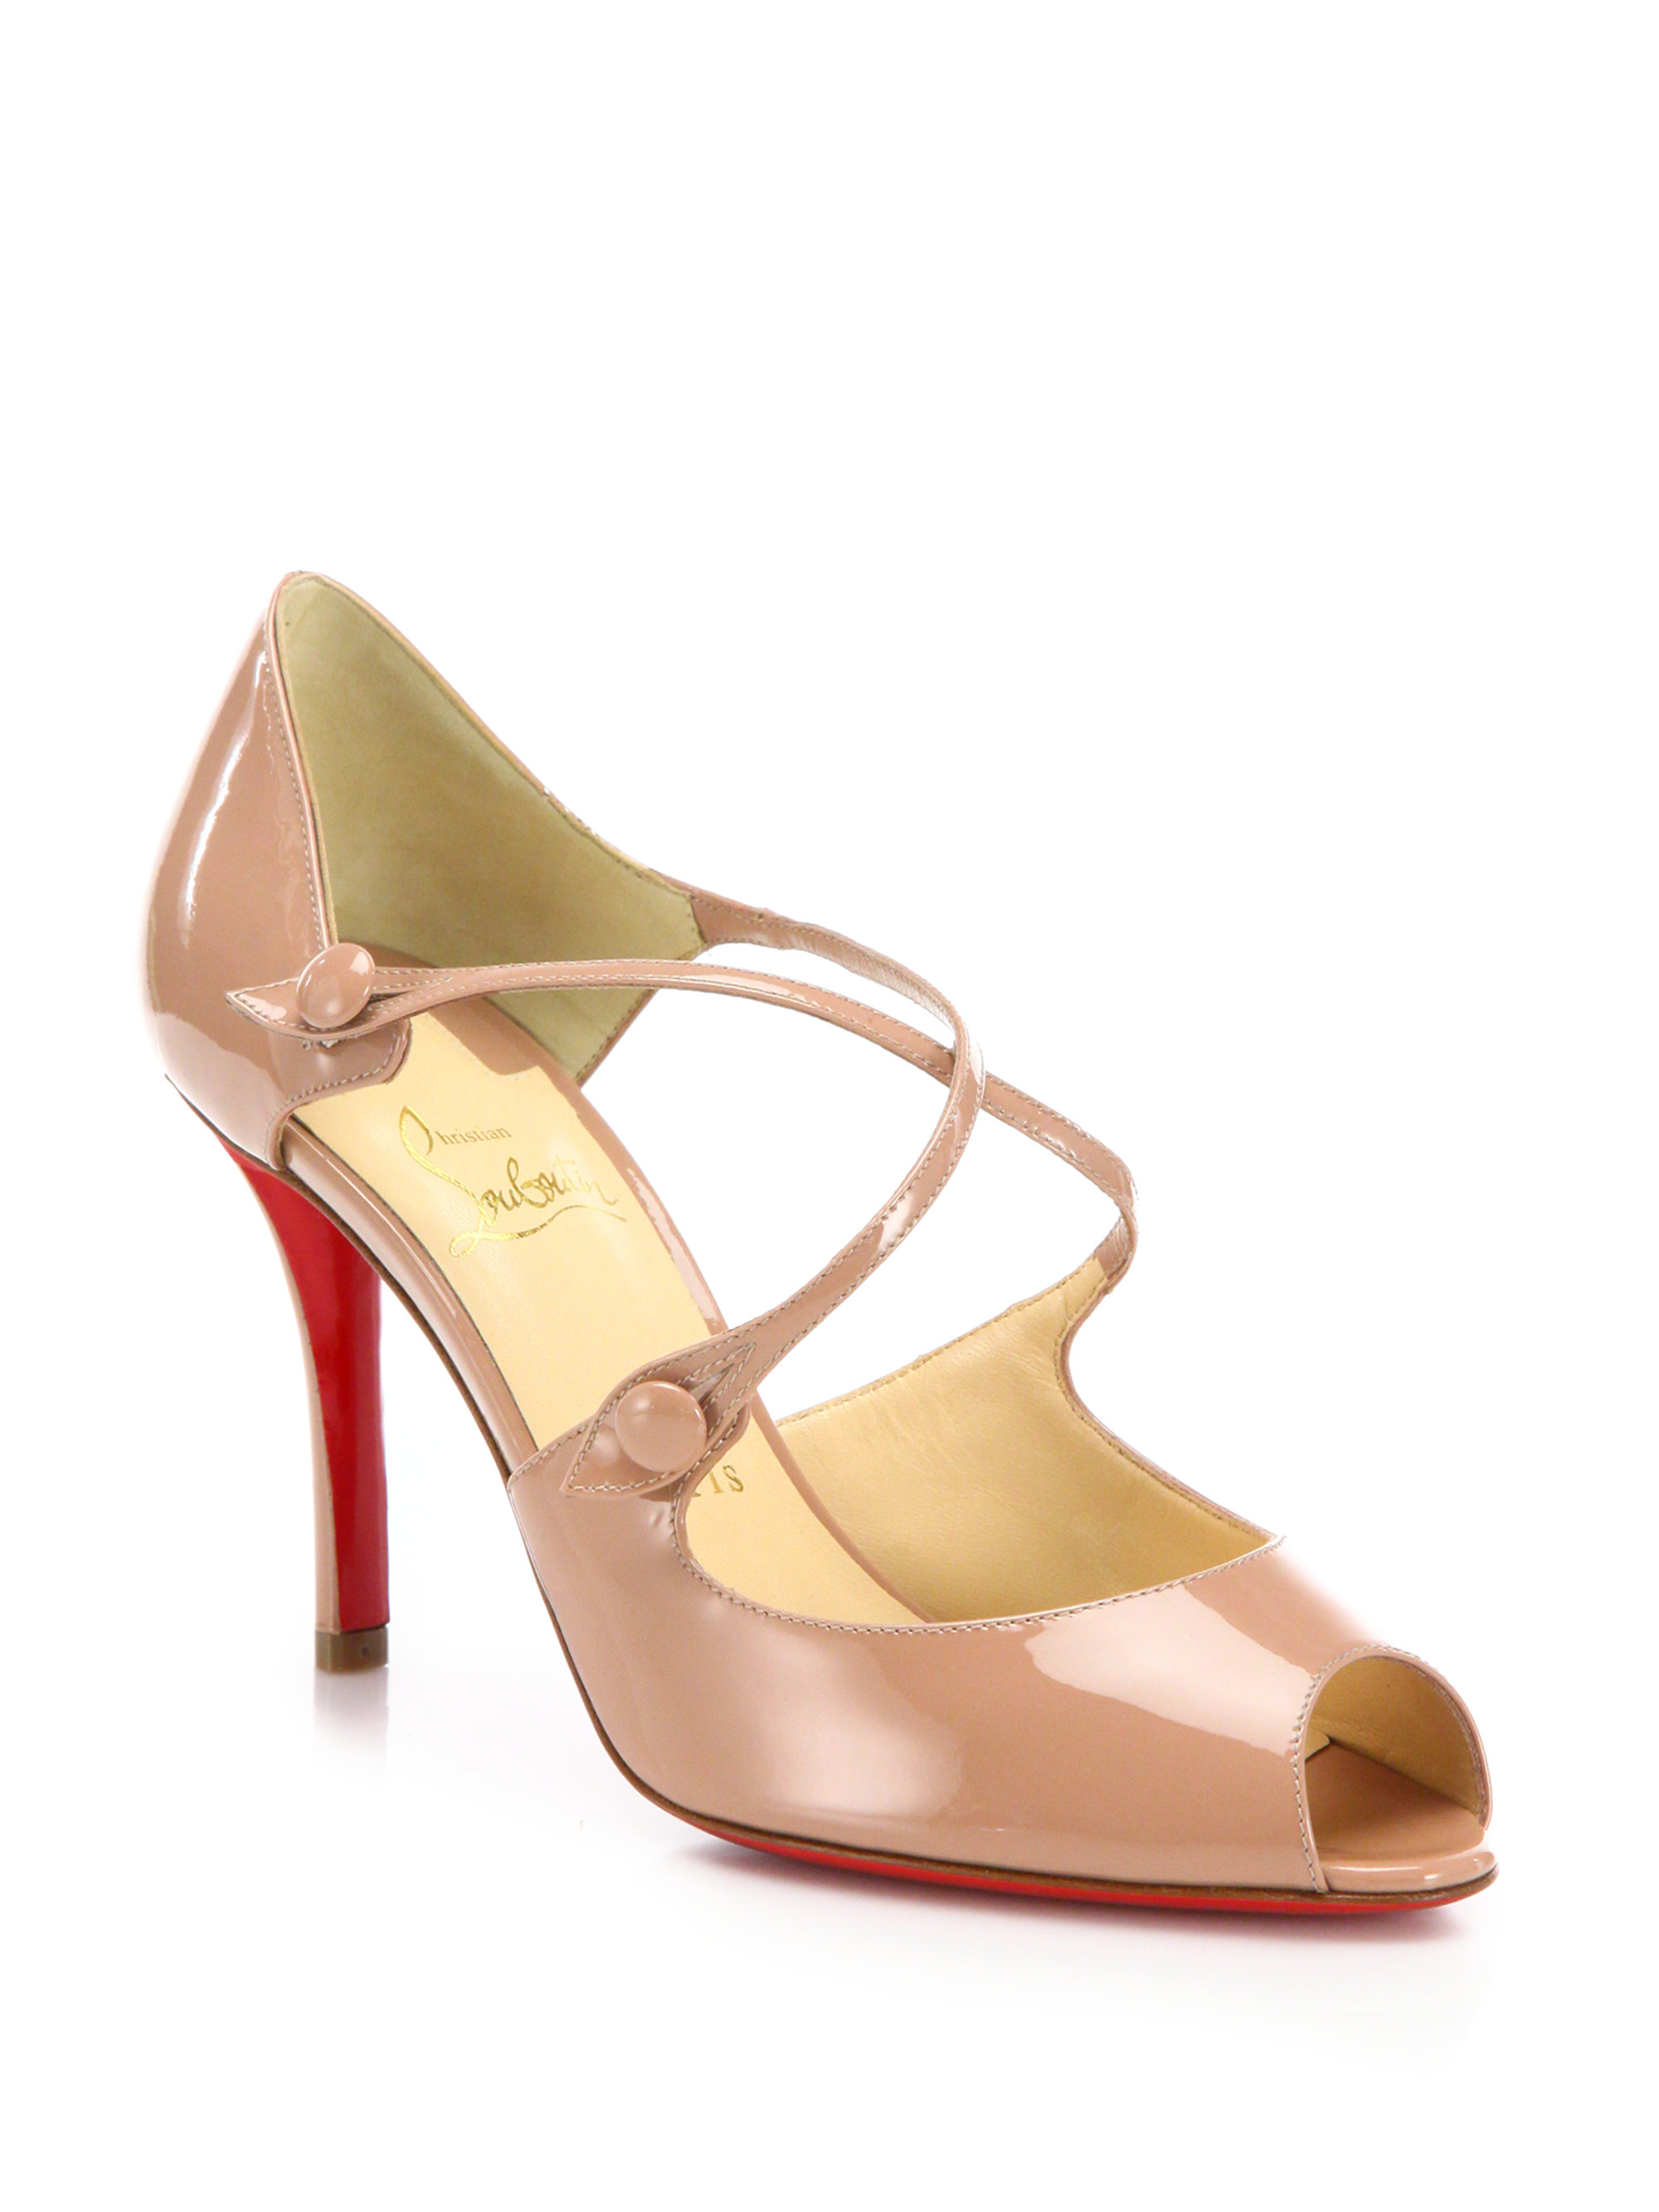 red bottom spiked sneakers - Christian louboutin Debriditoe Patent Leather Sandals in Pink ...